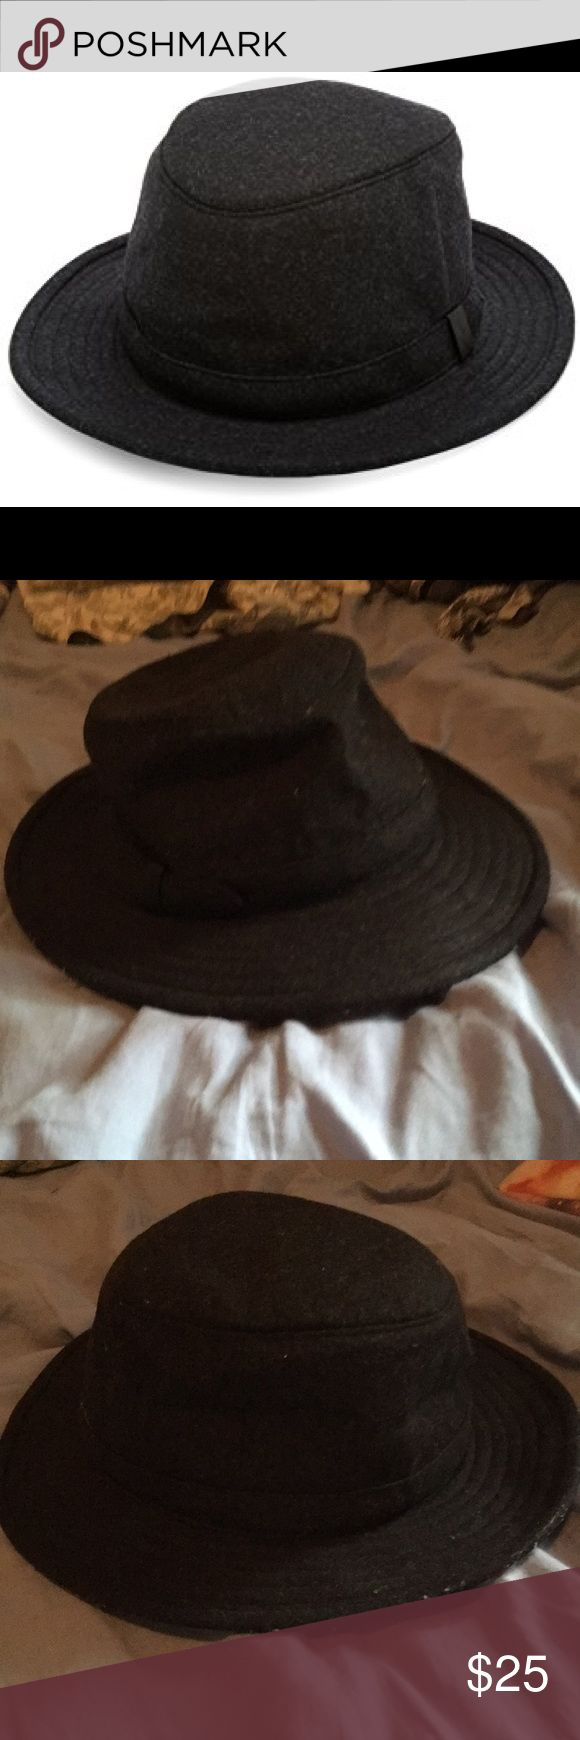 Tilley Endurable Tec-Wool Hat This is the best hat! The best I've ever had. It's so attractive and comfortable and crushable. Canadian made. Size 7. I would keep it forever if I wasn't moving to Hawaii! Tilley Endurables Accessories Hats